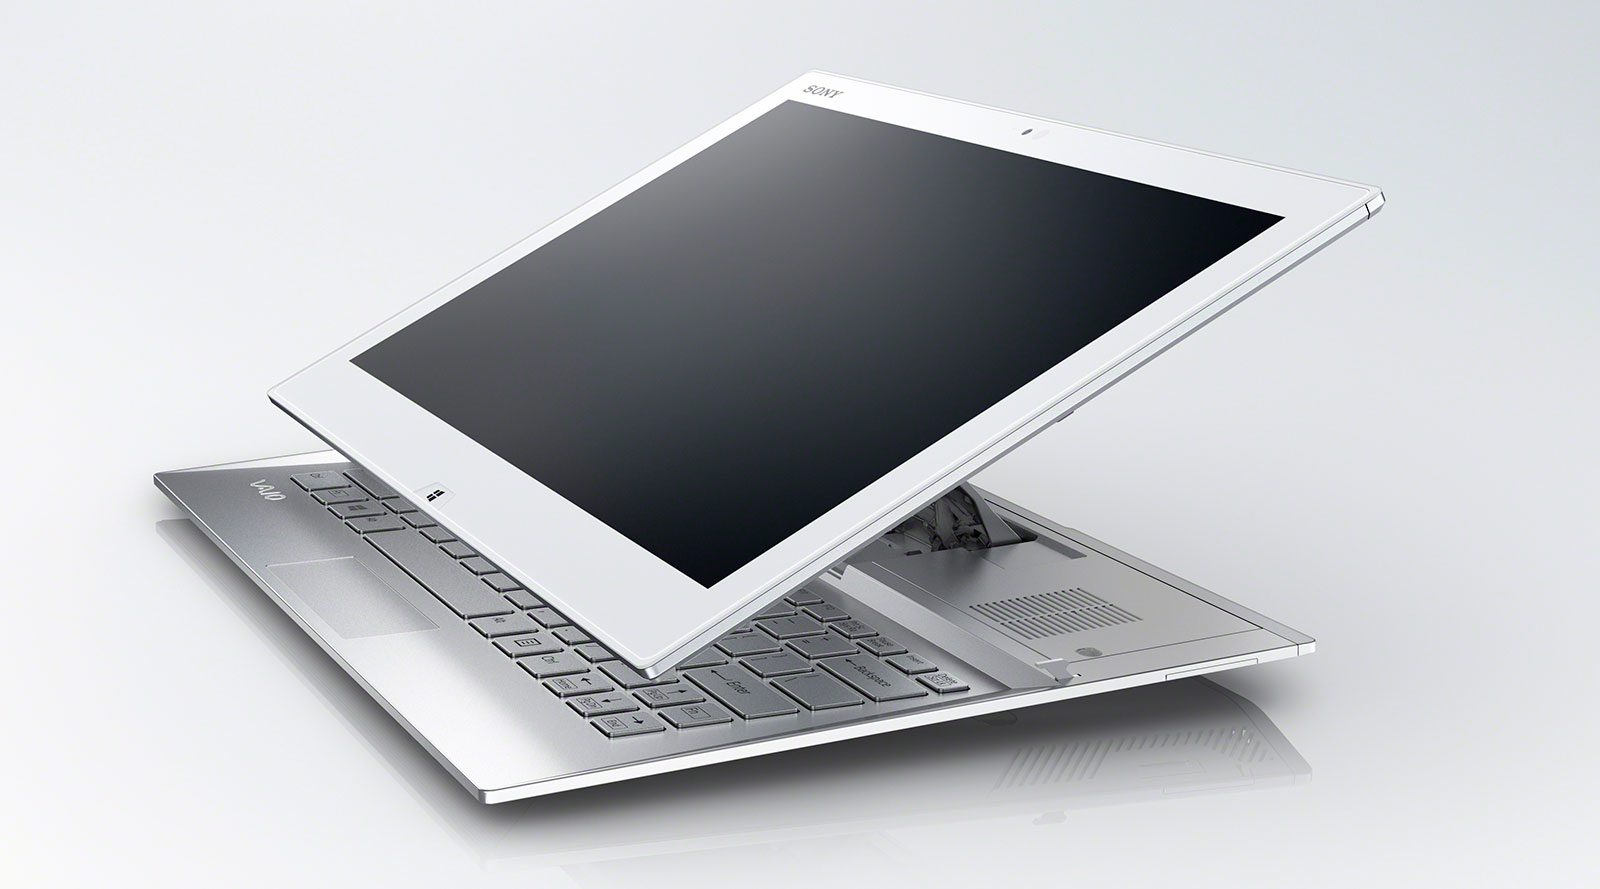 Sony Vaio Duo 13 - the sliding mechanism was improved